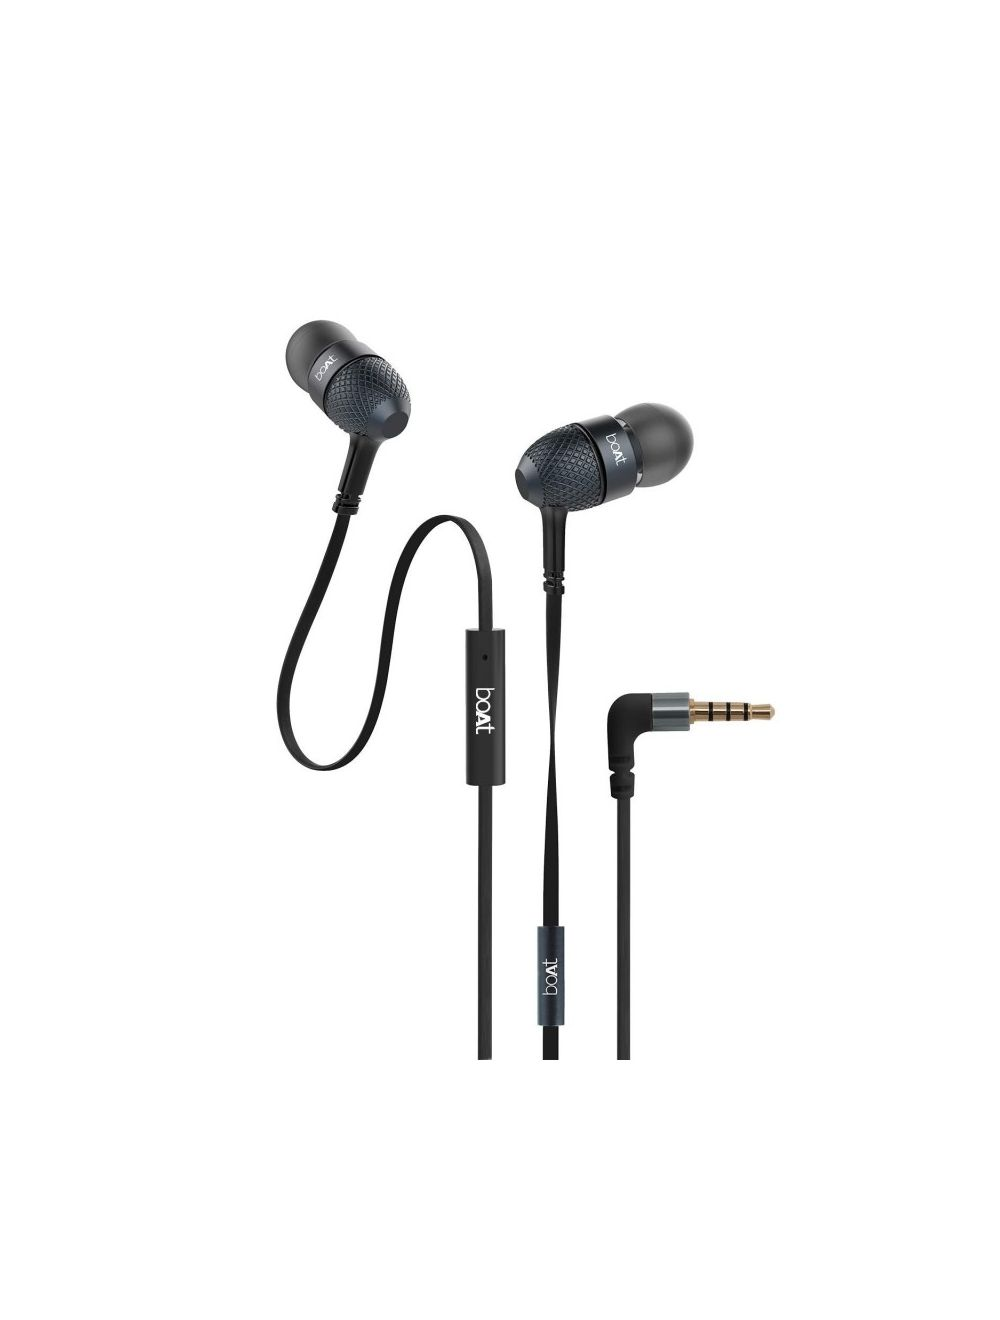 227eca5f7ca Boat Bassheads 225 In-Ear Headphones With Mic (Black)